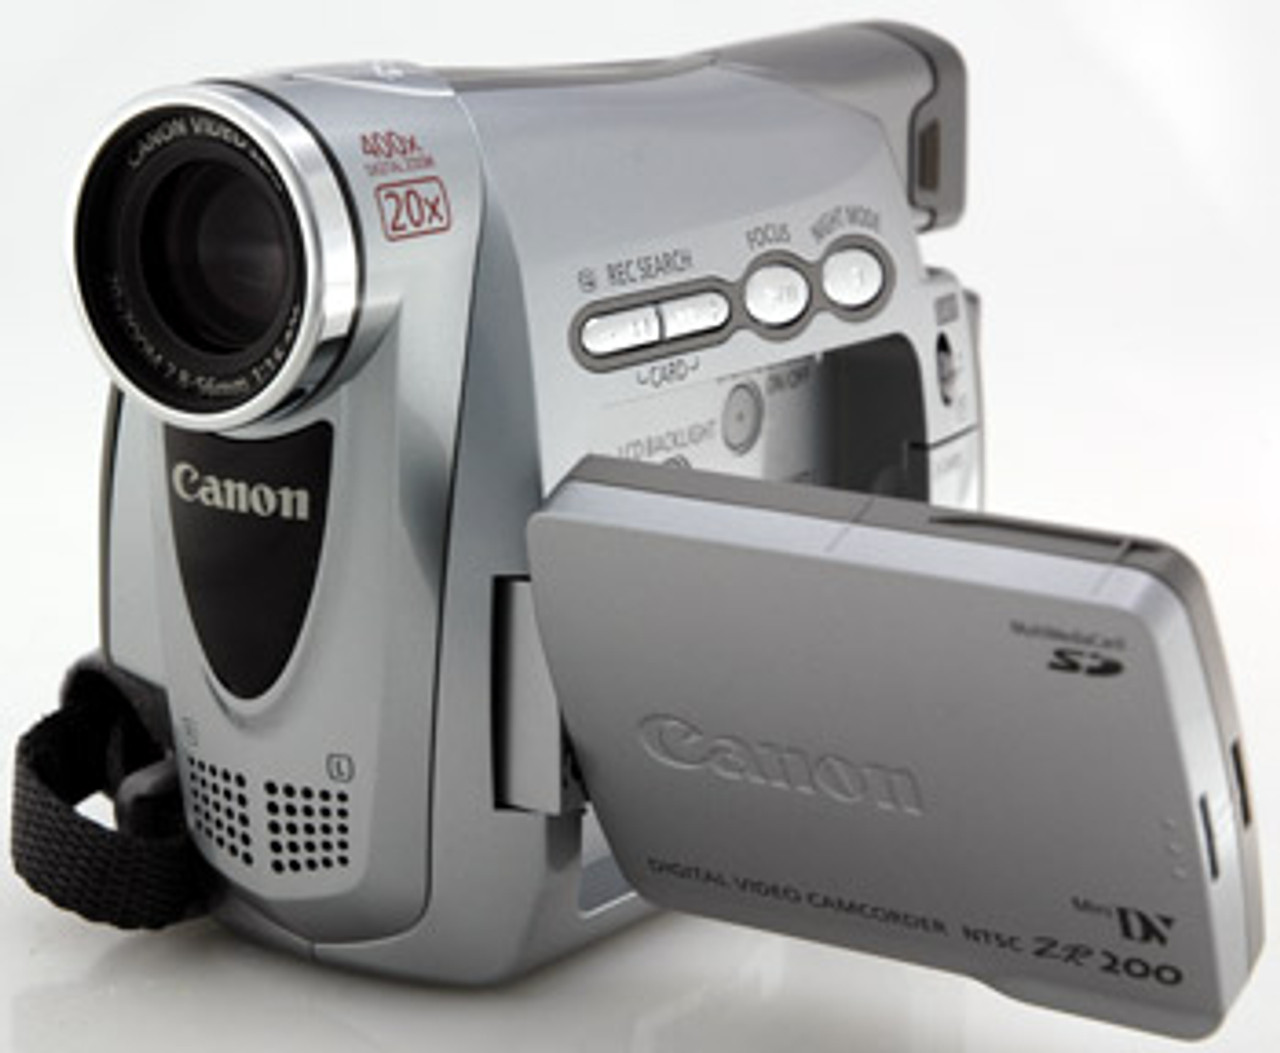 canon zr200 minidv camcorder w 20x optical zoom porter electronics rh porterelectronics com Canon ZR80 Camcorder Digital Canon ZR200 Memory Card